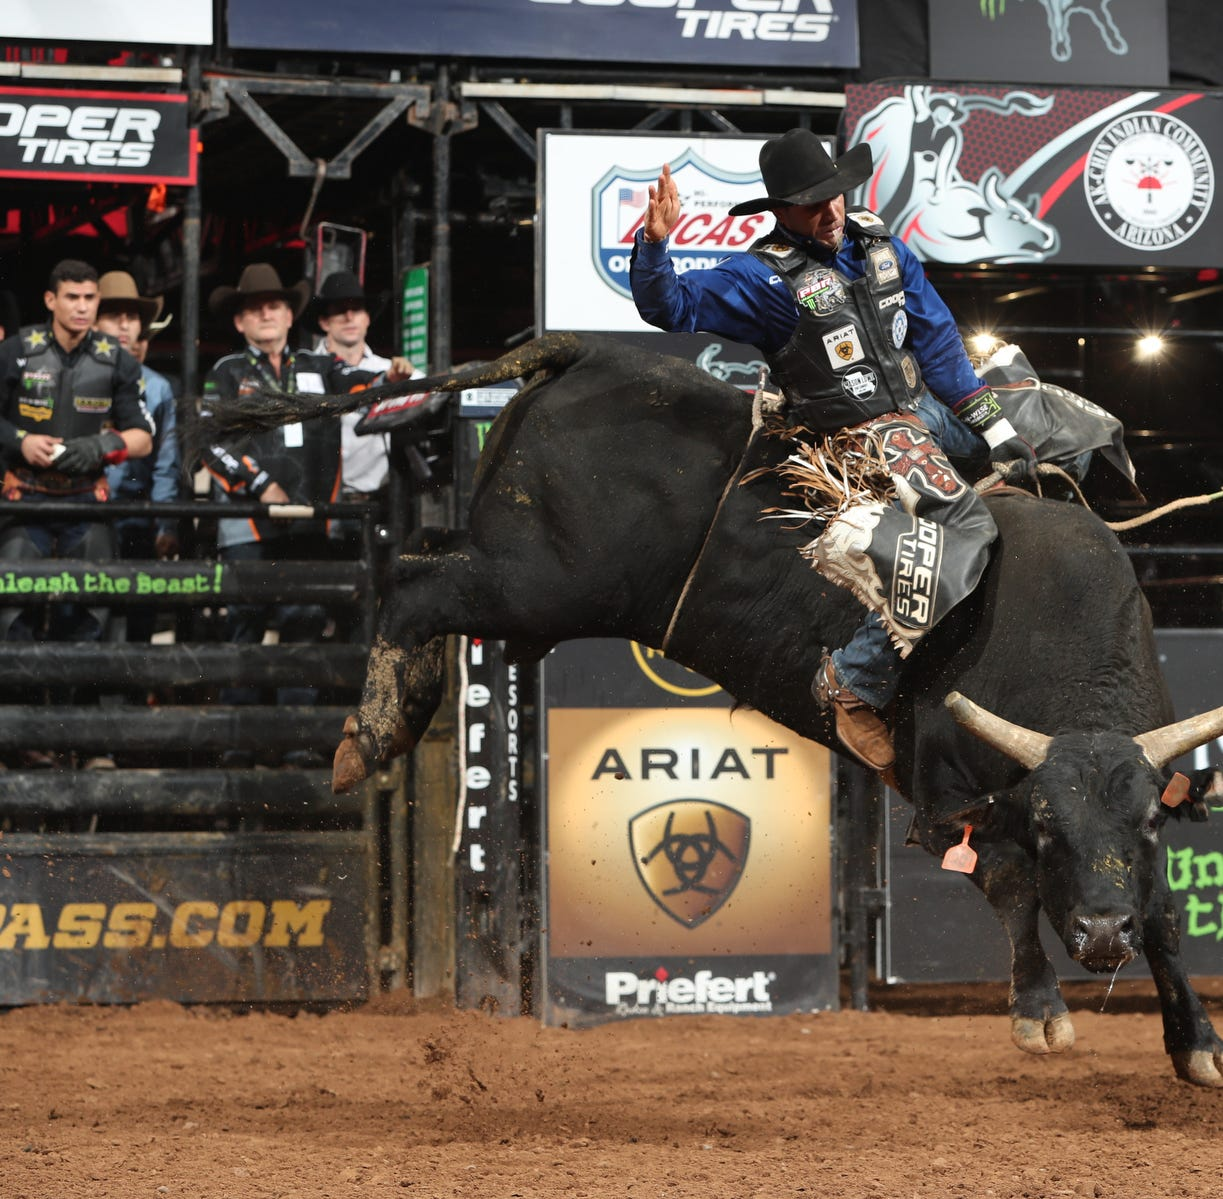 Worlds' top bull riders coming to Resch rodeo for Titletown Stampede Showdown